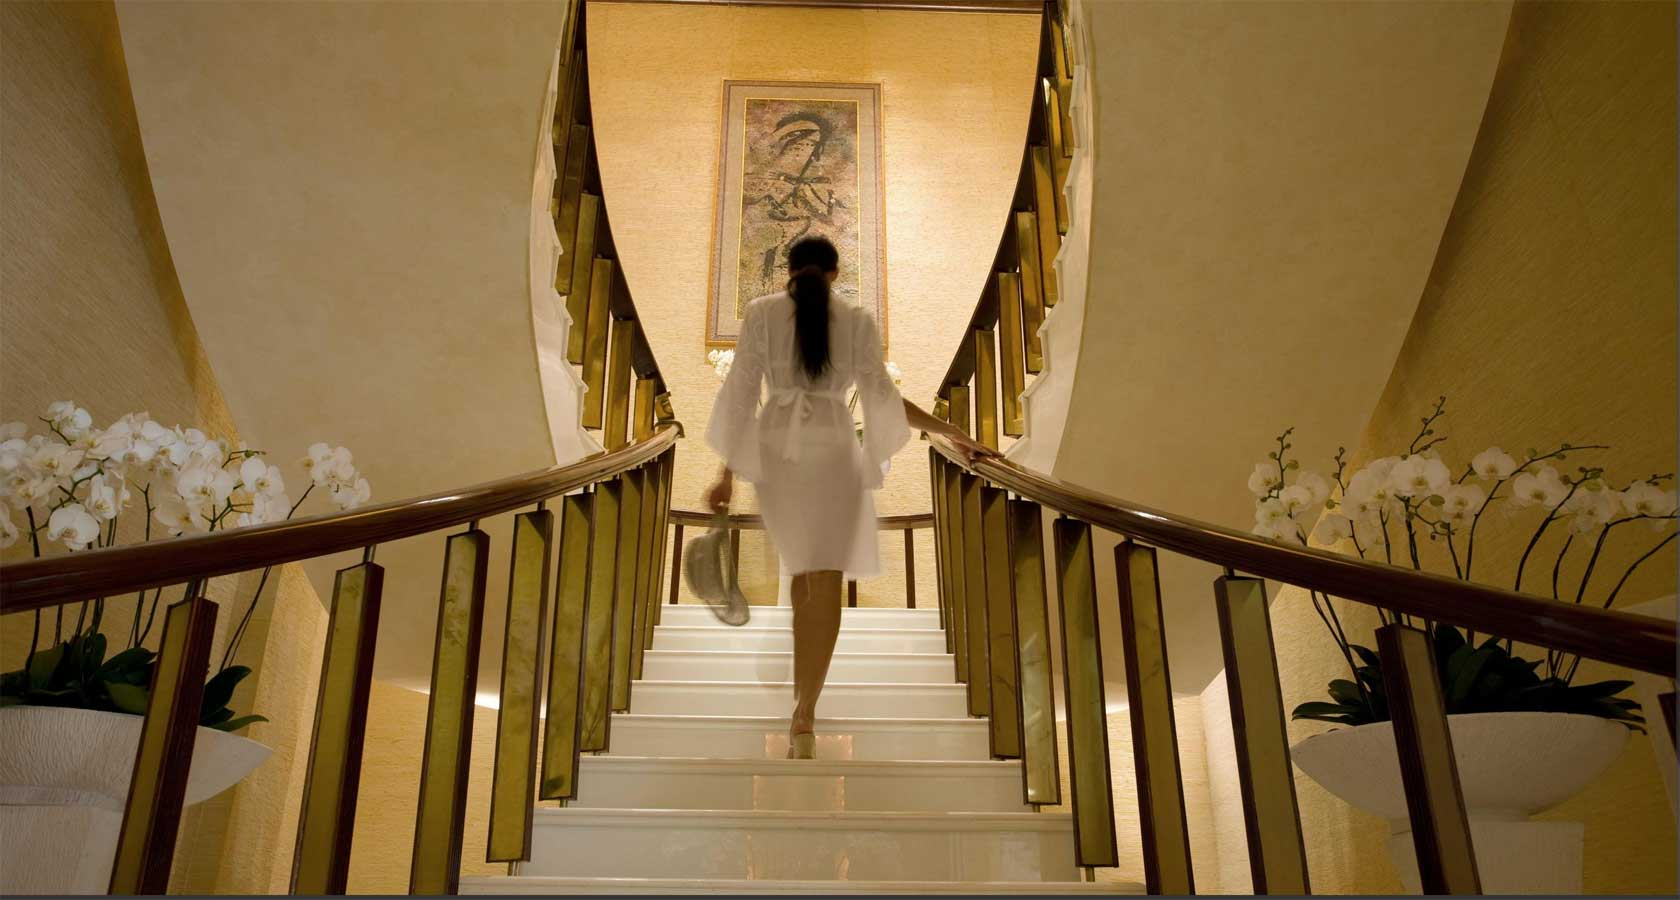 INTERCONTIENTAL BALI RESORT woman climbing stairs white gown